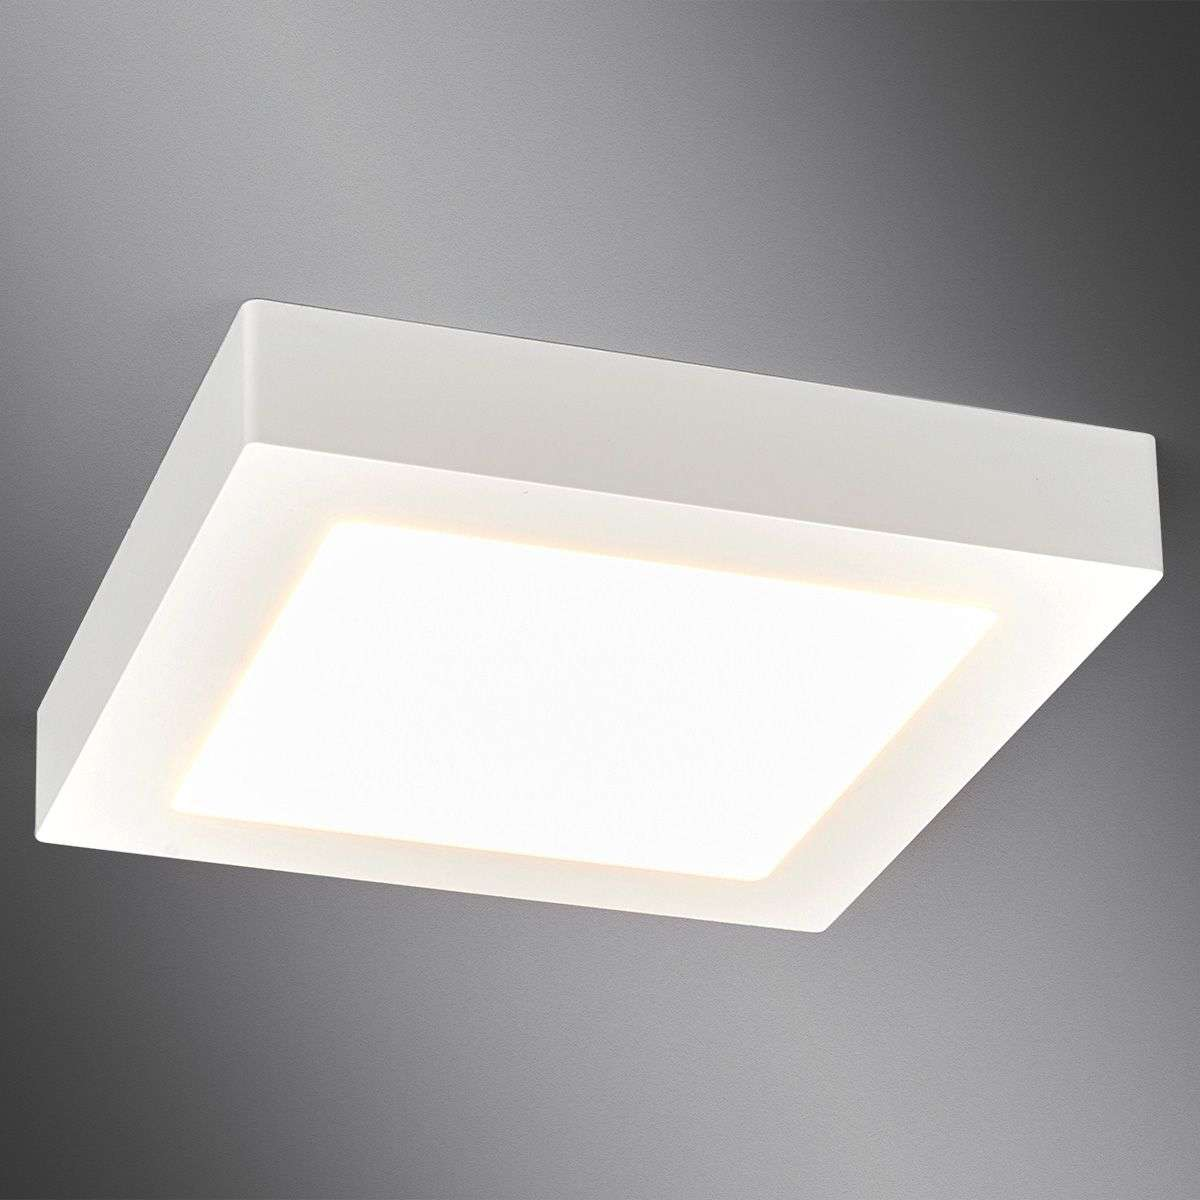 White Square Led Bathroom Ceiling Light Rayan